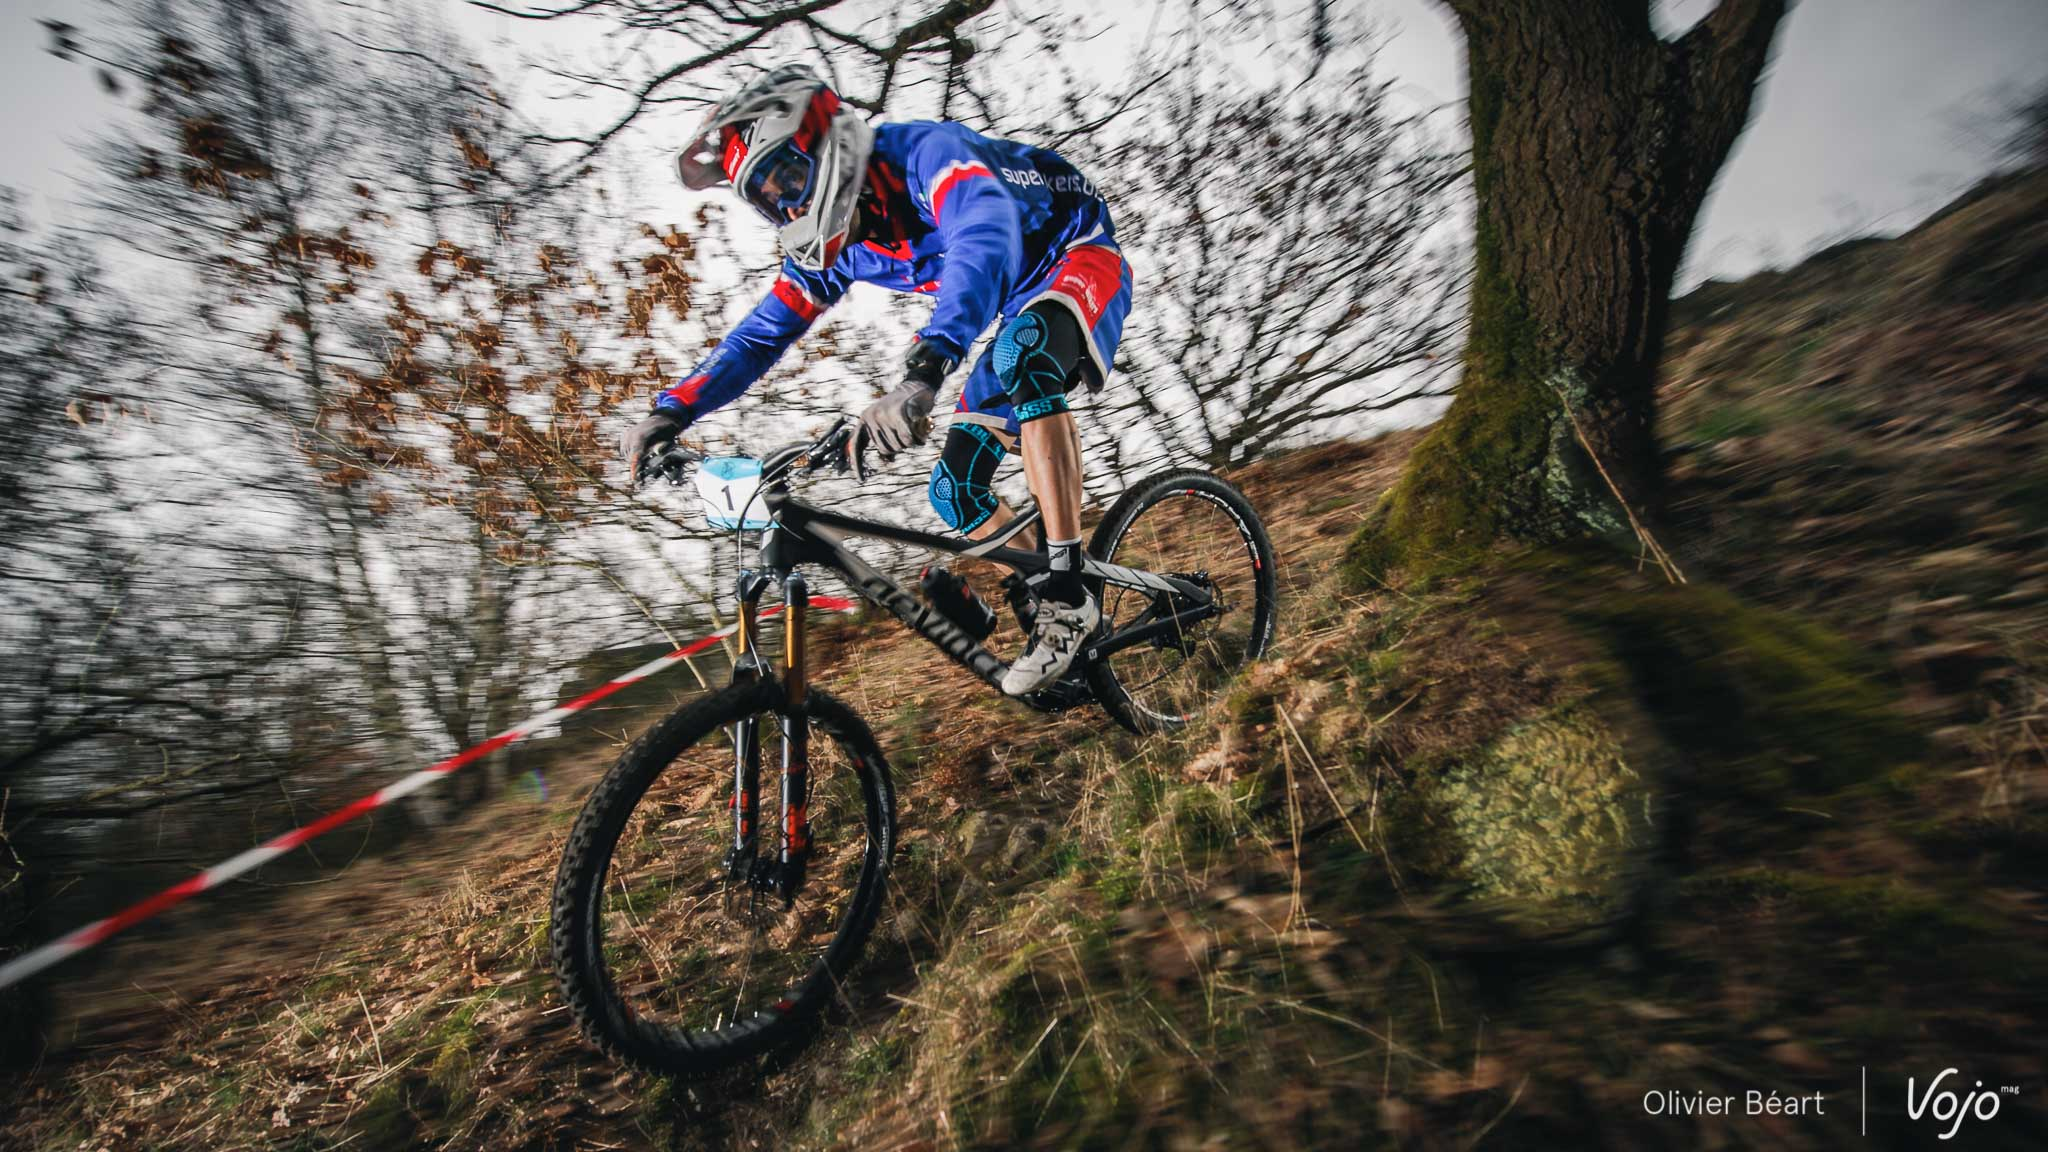 Belgian_Enduro_Cup_Chaudfontaine_2016_Copyright_OBeart_Vojomag-26